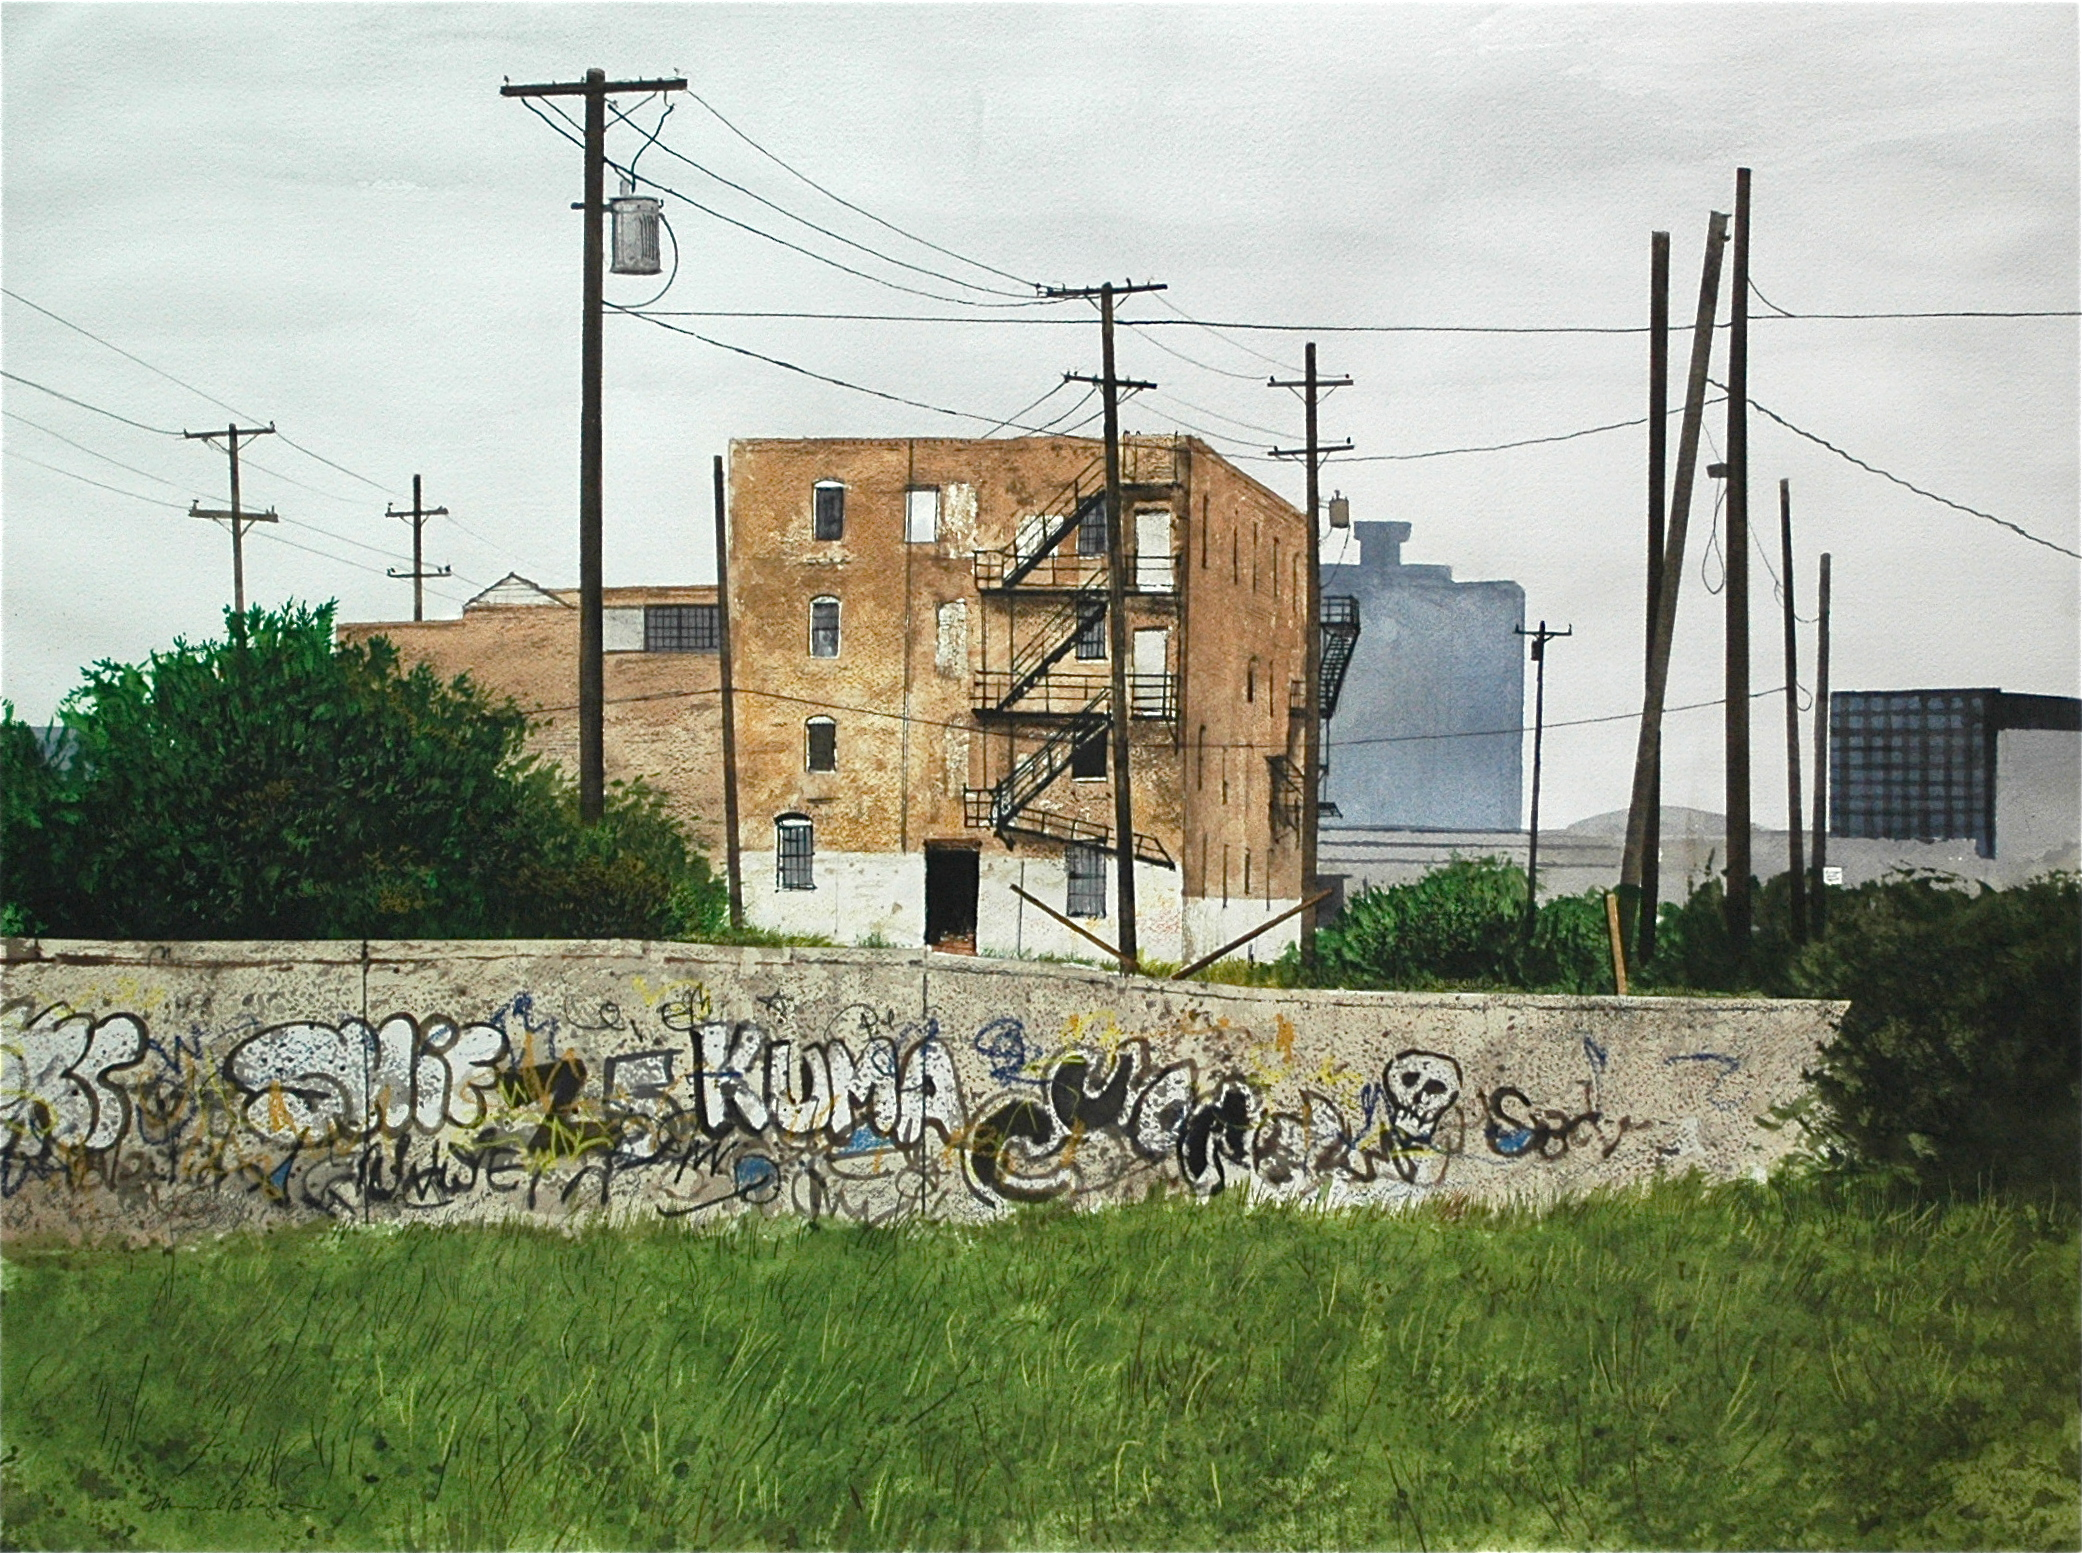 "Daniel Blagg,  Study for No Man's Land , watercolor on paper, 27 1/2 x 35"" SOLD."